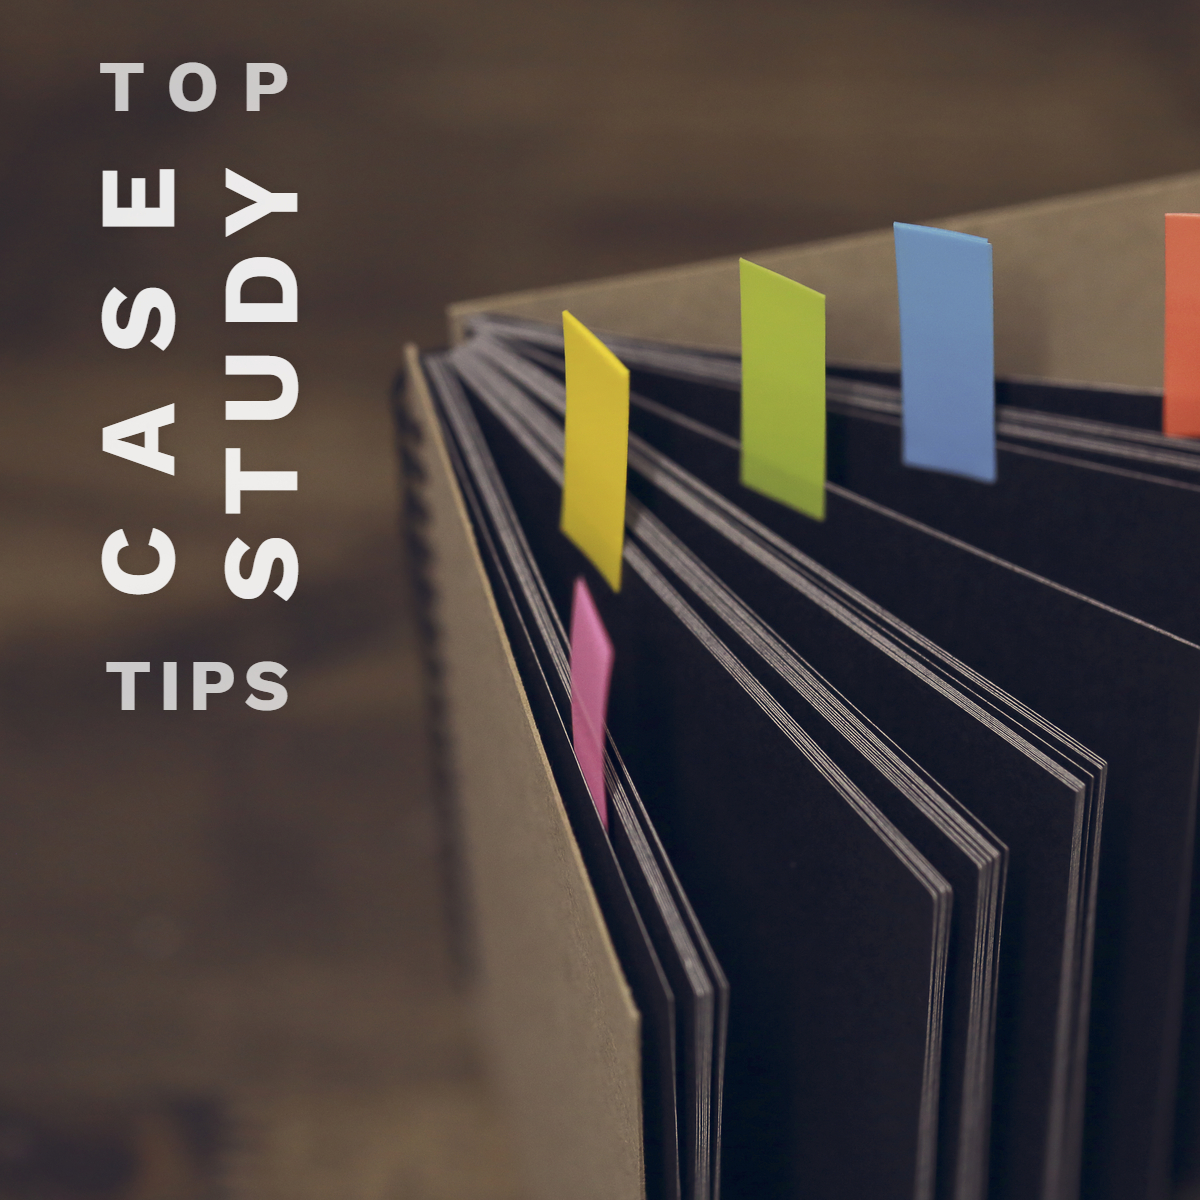 3 Tips to the keep case studies flowing